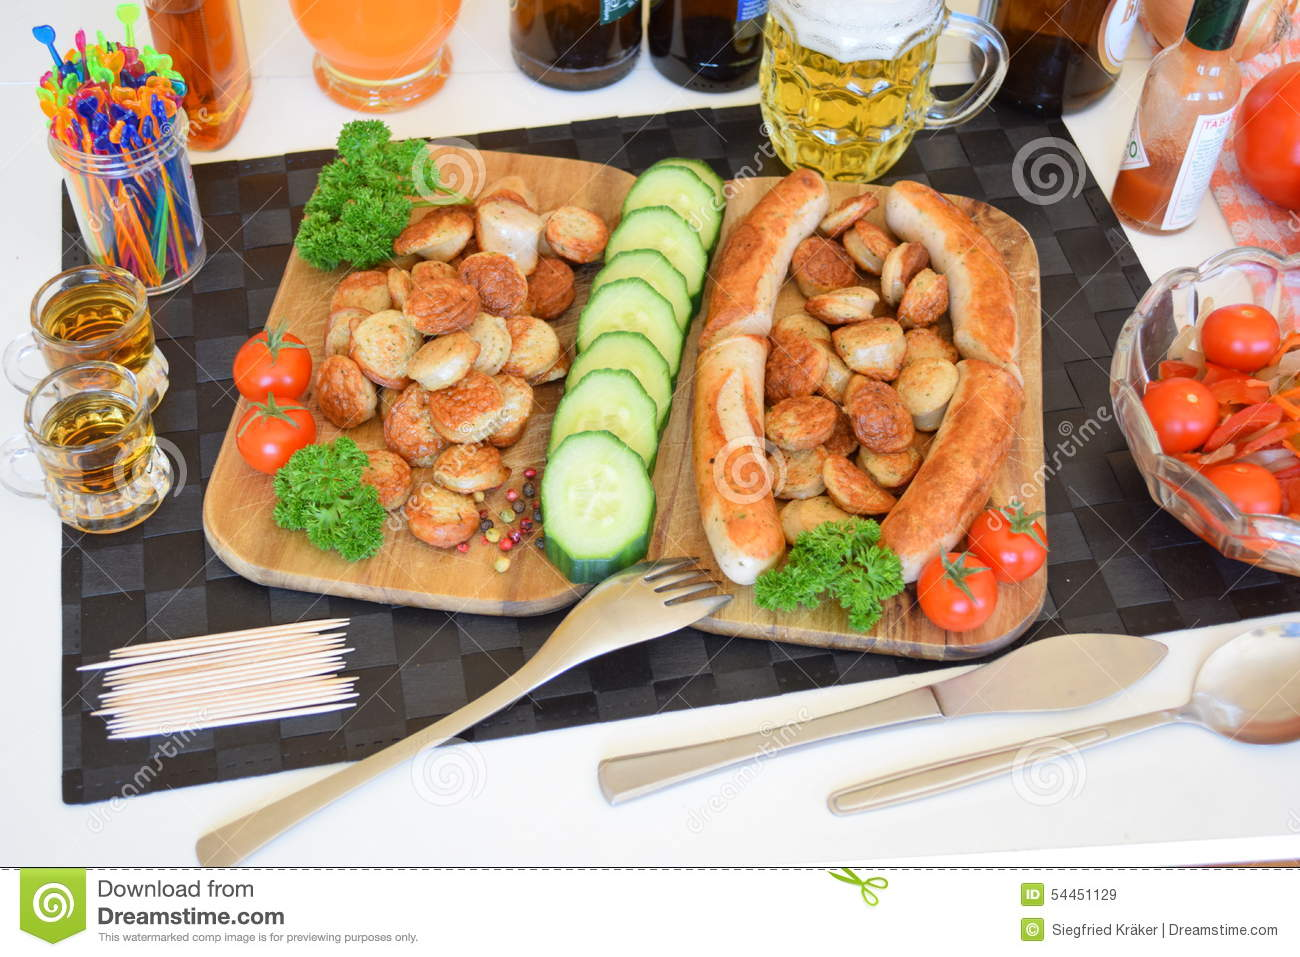 Bratwurst, German Bratwurst, German Sausages, Weiss.